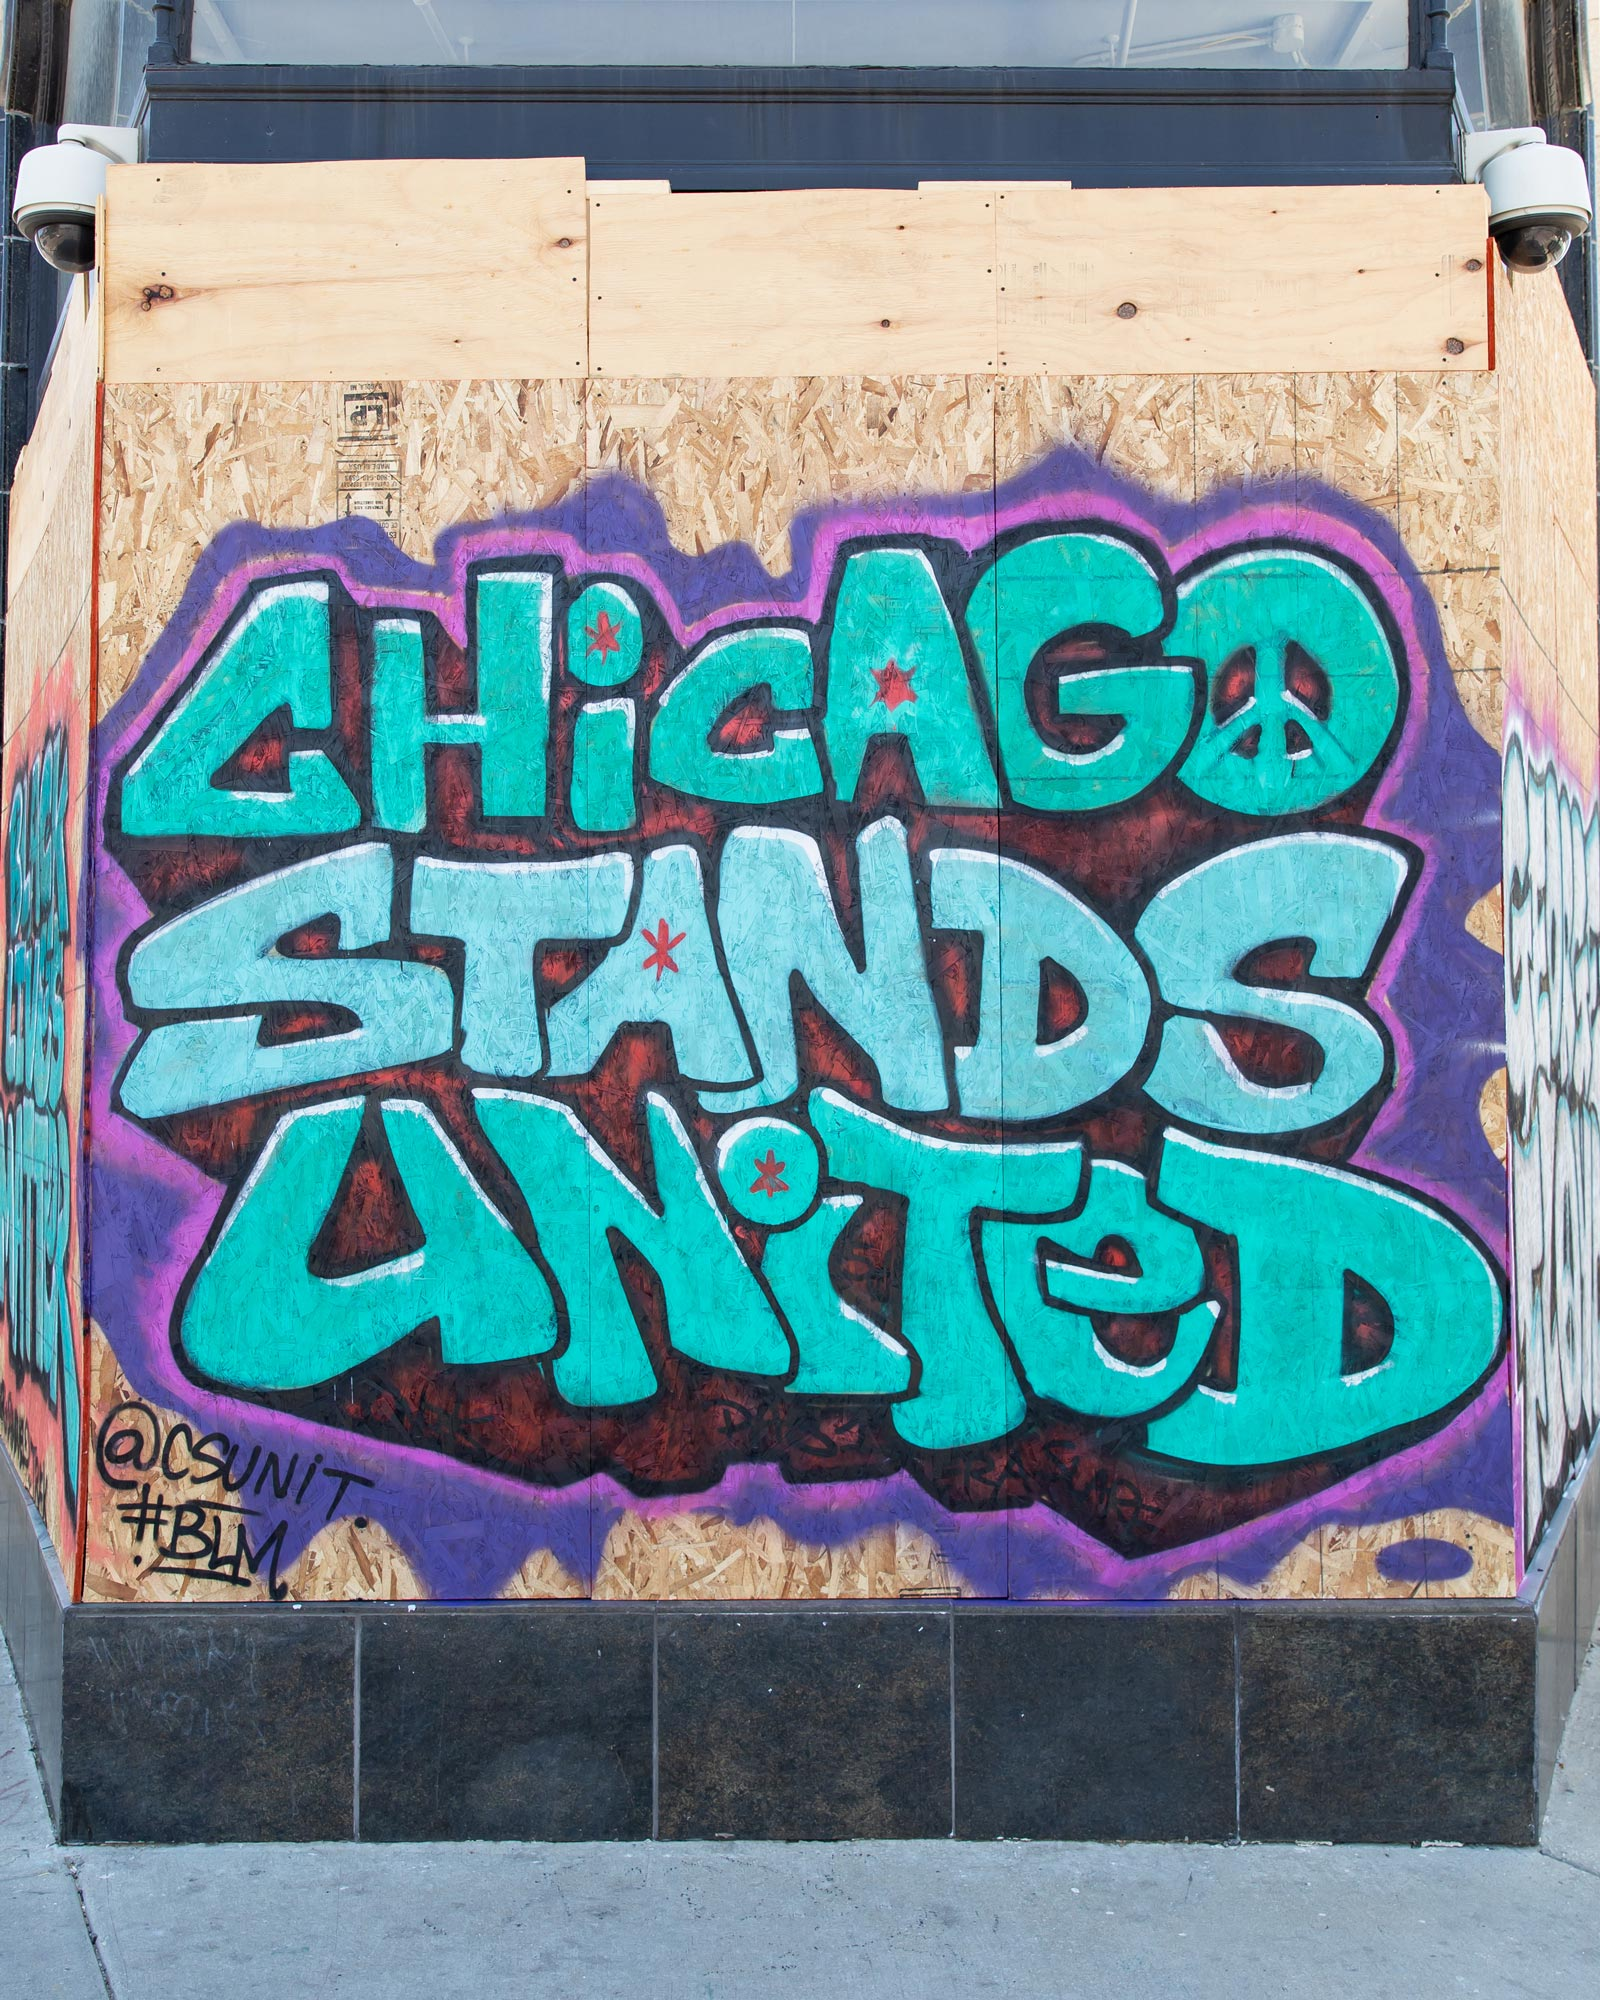 Chicago Stands United Mural Logan Square